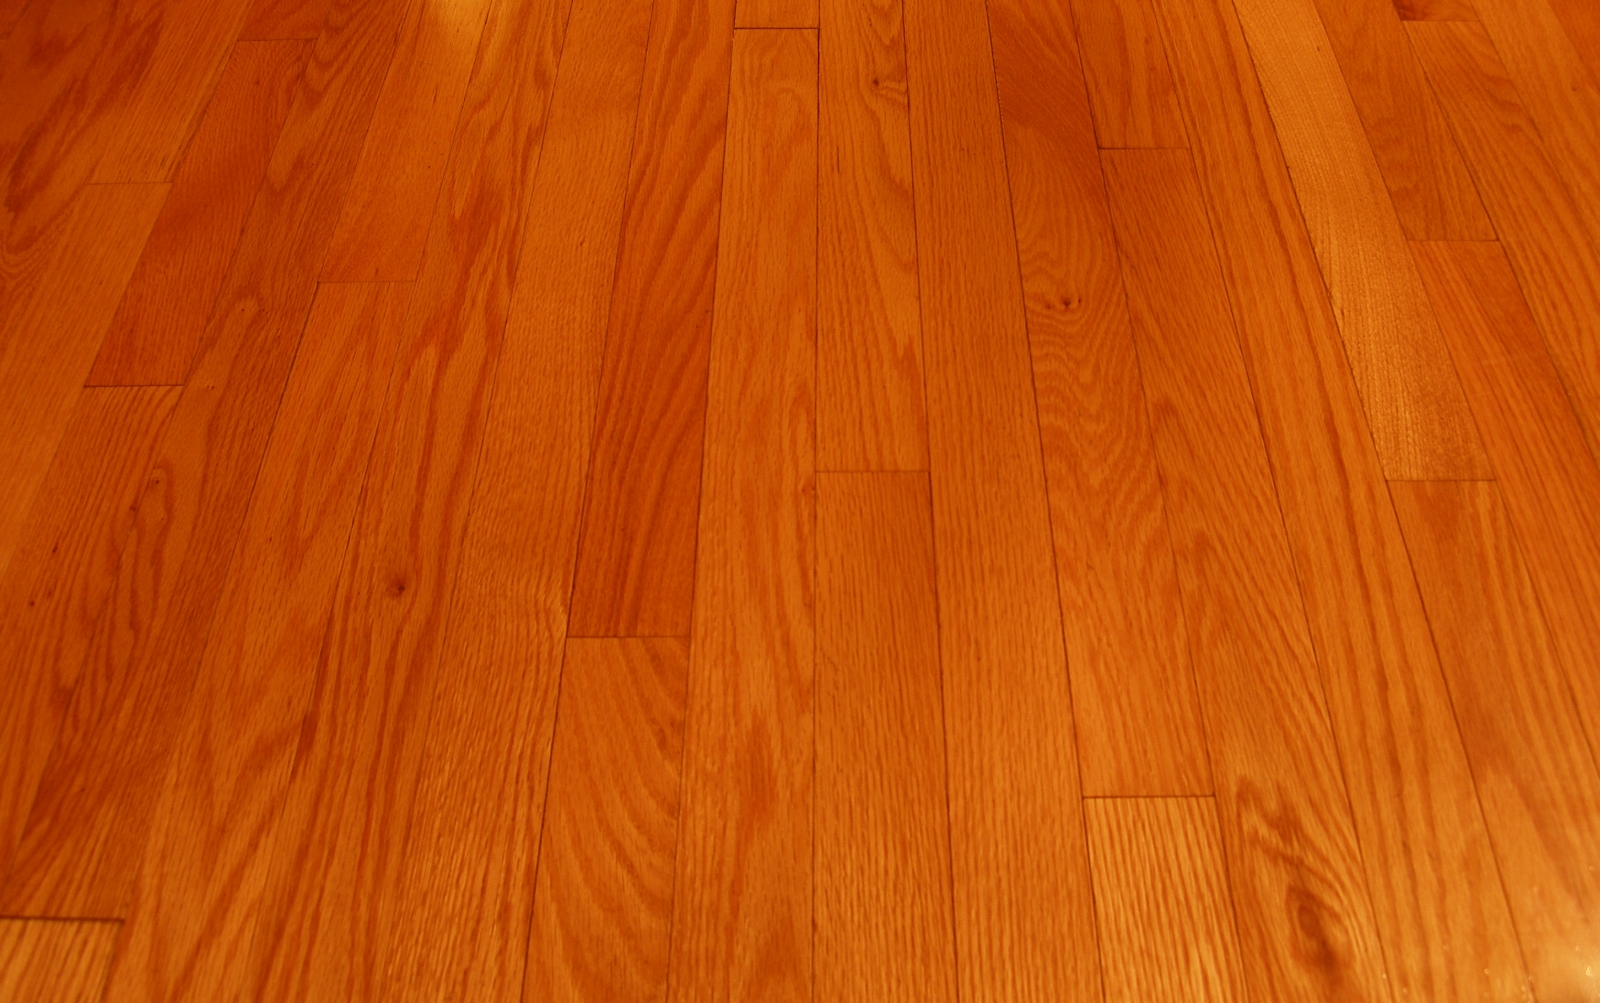 Hardwood floor pictures flooring ideas home for Where to get hardwood floors